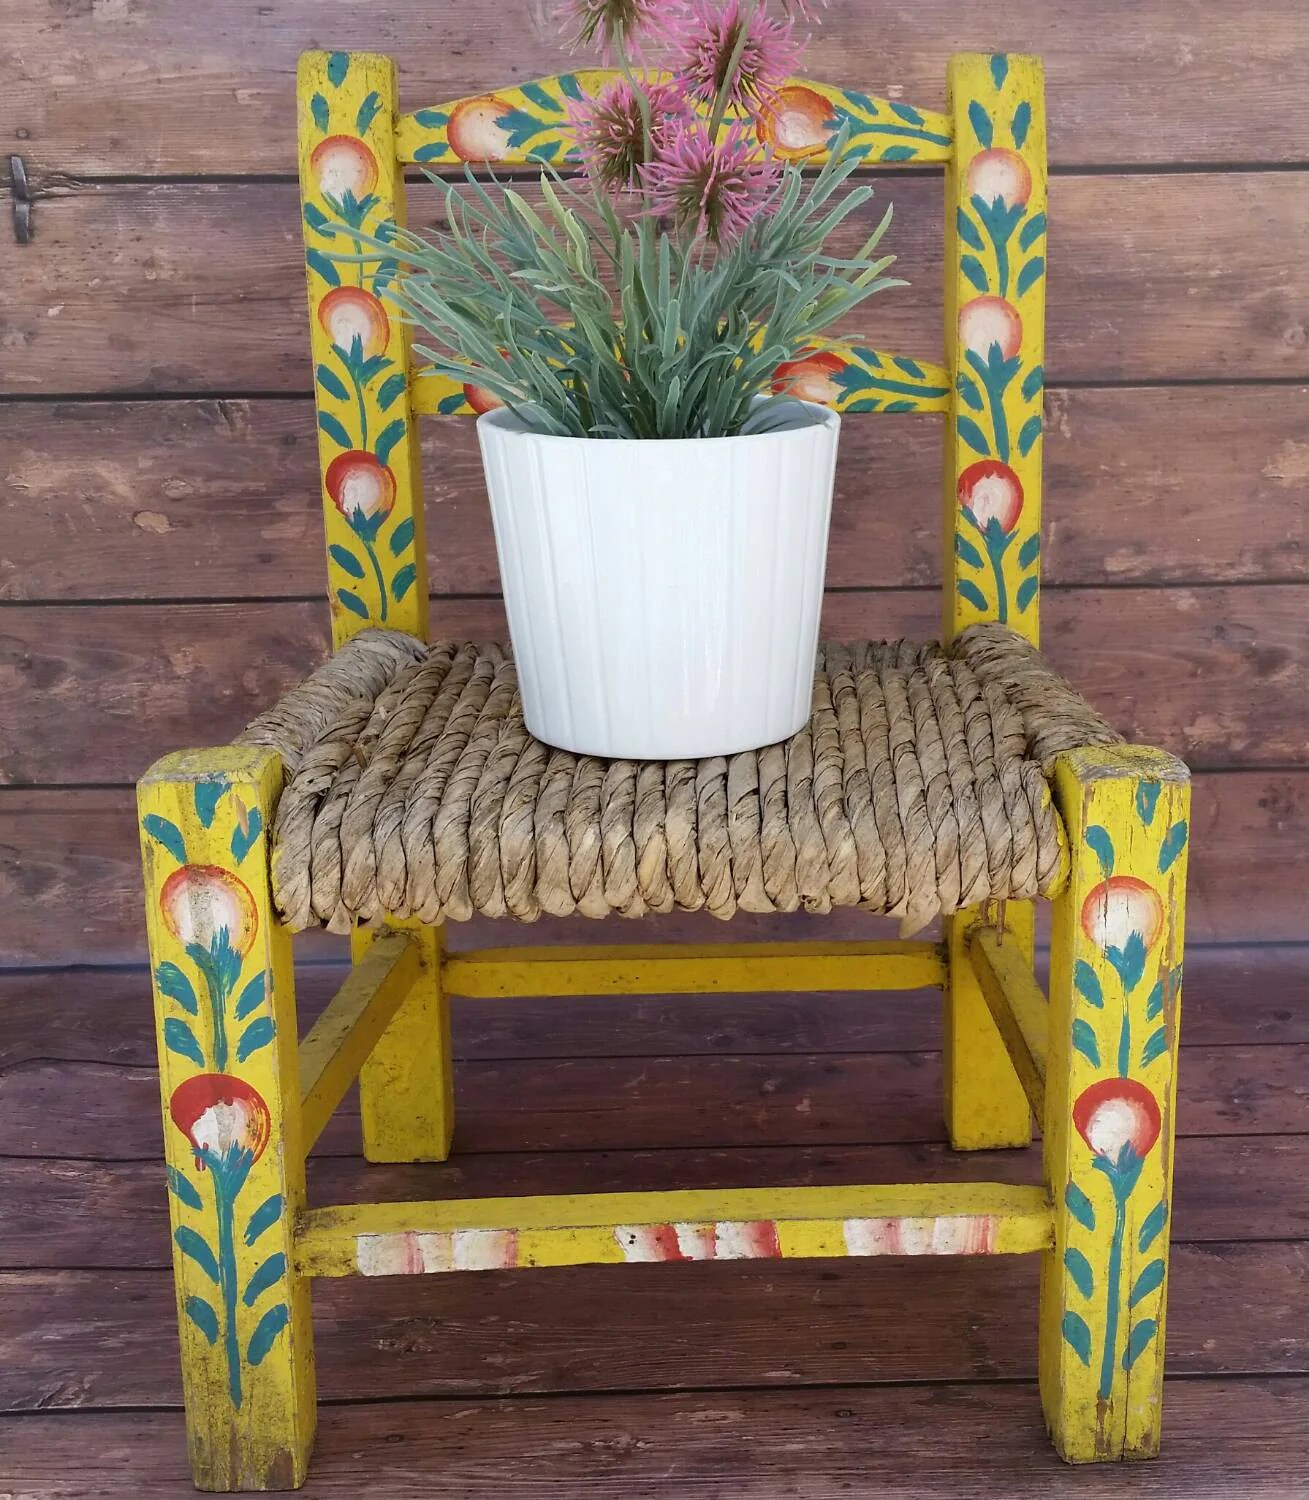 vintage wicker rocking chair glider swivel mechanism small wood and doll chair/hand painted folk art mexican